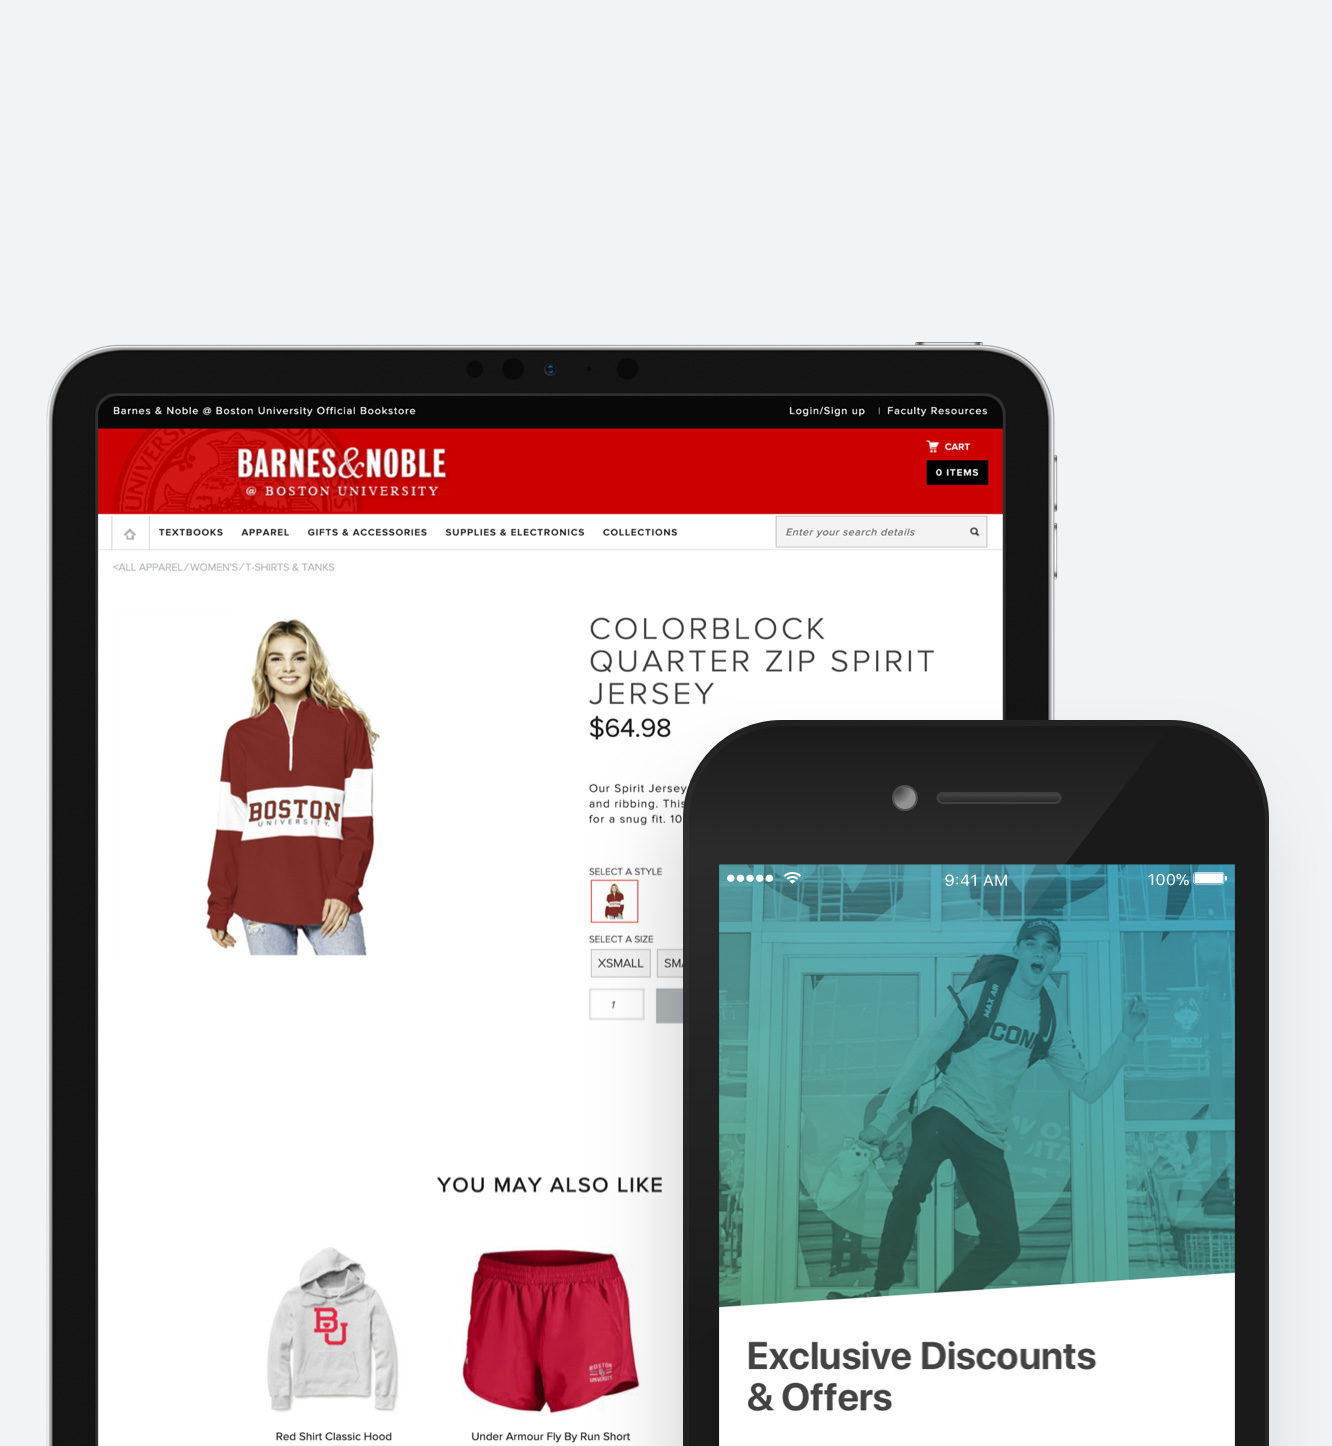 Barnes & Noble retail bookstore website shown on table and mobile devices